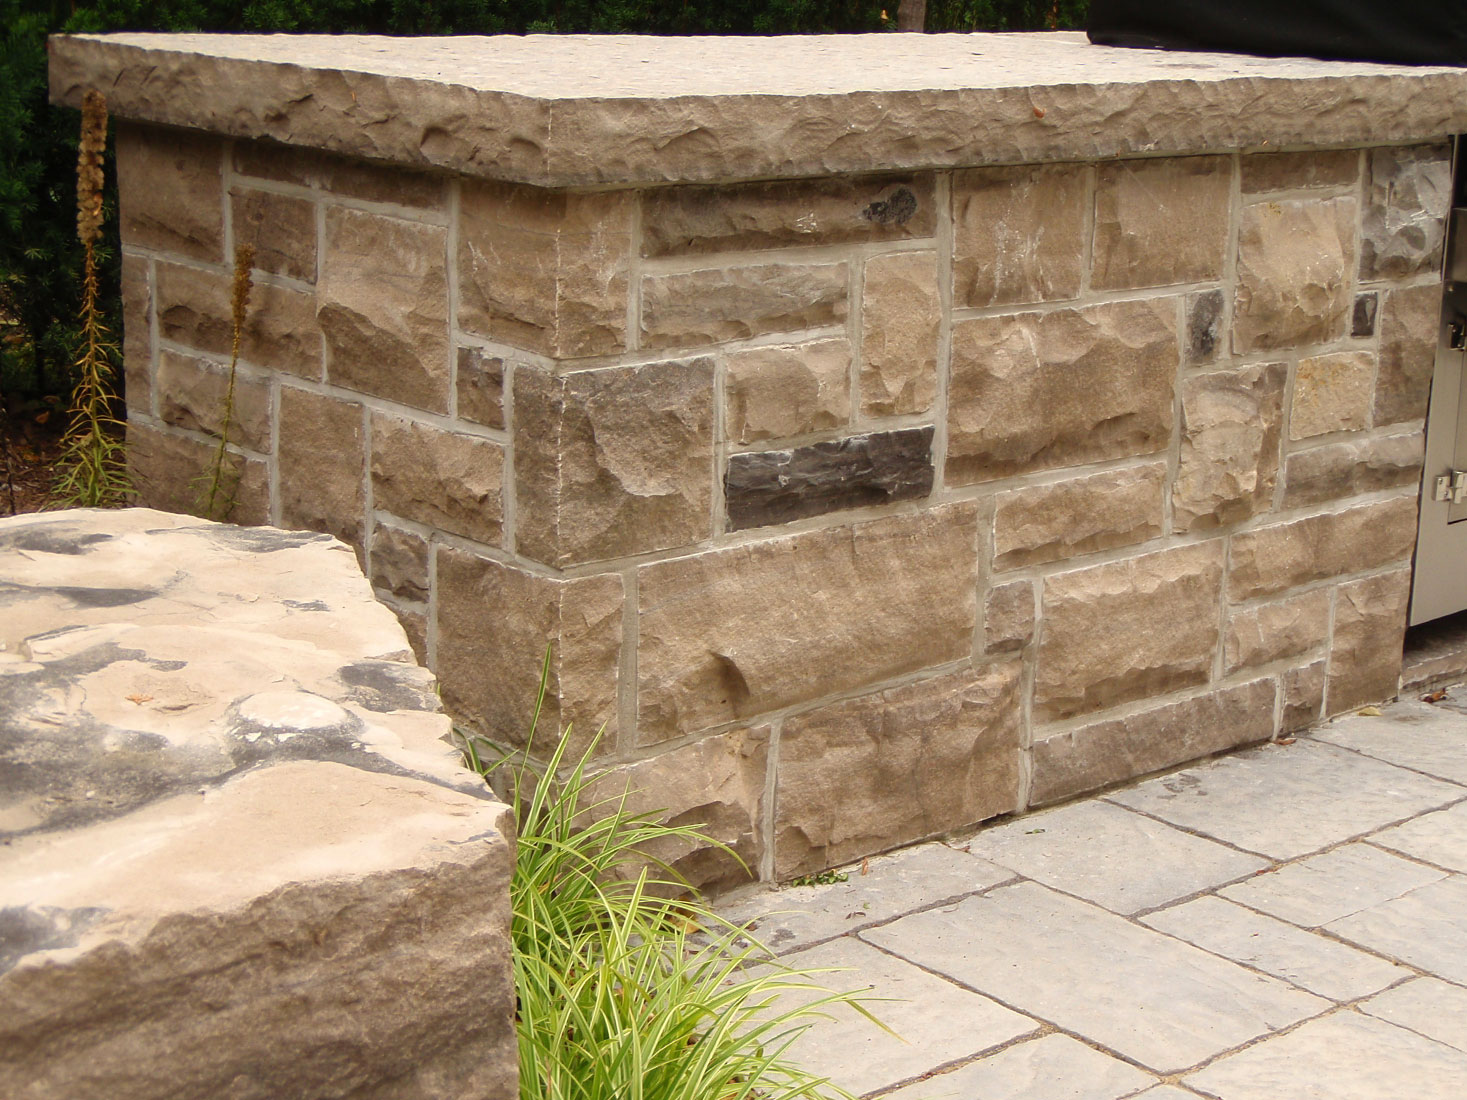 Natural Building Stones : Ebel natural bed building stone coursing ledgerock